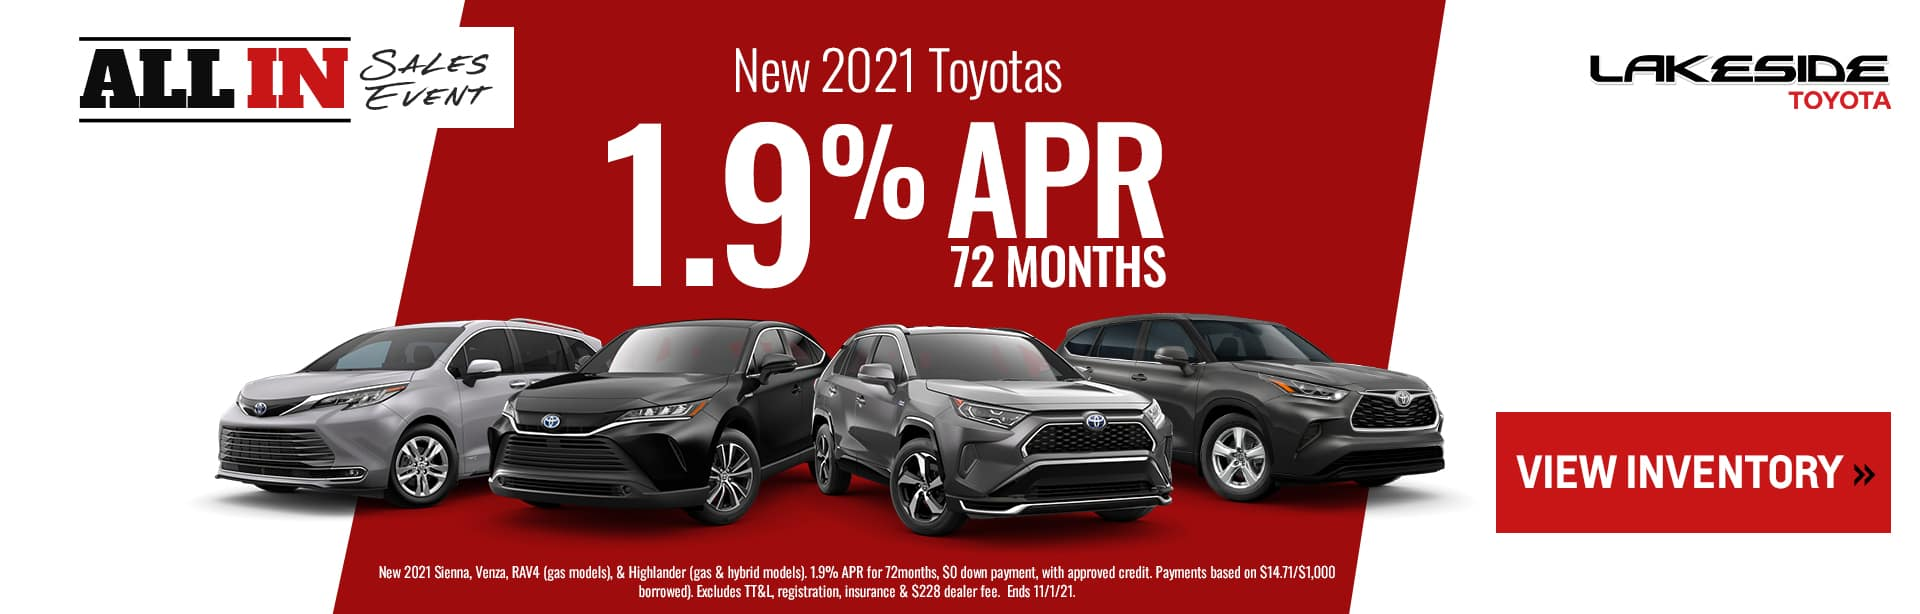 New 2021 Toyotas 1.9% APR for 72 months